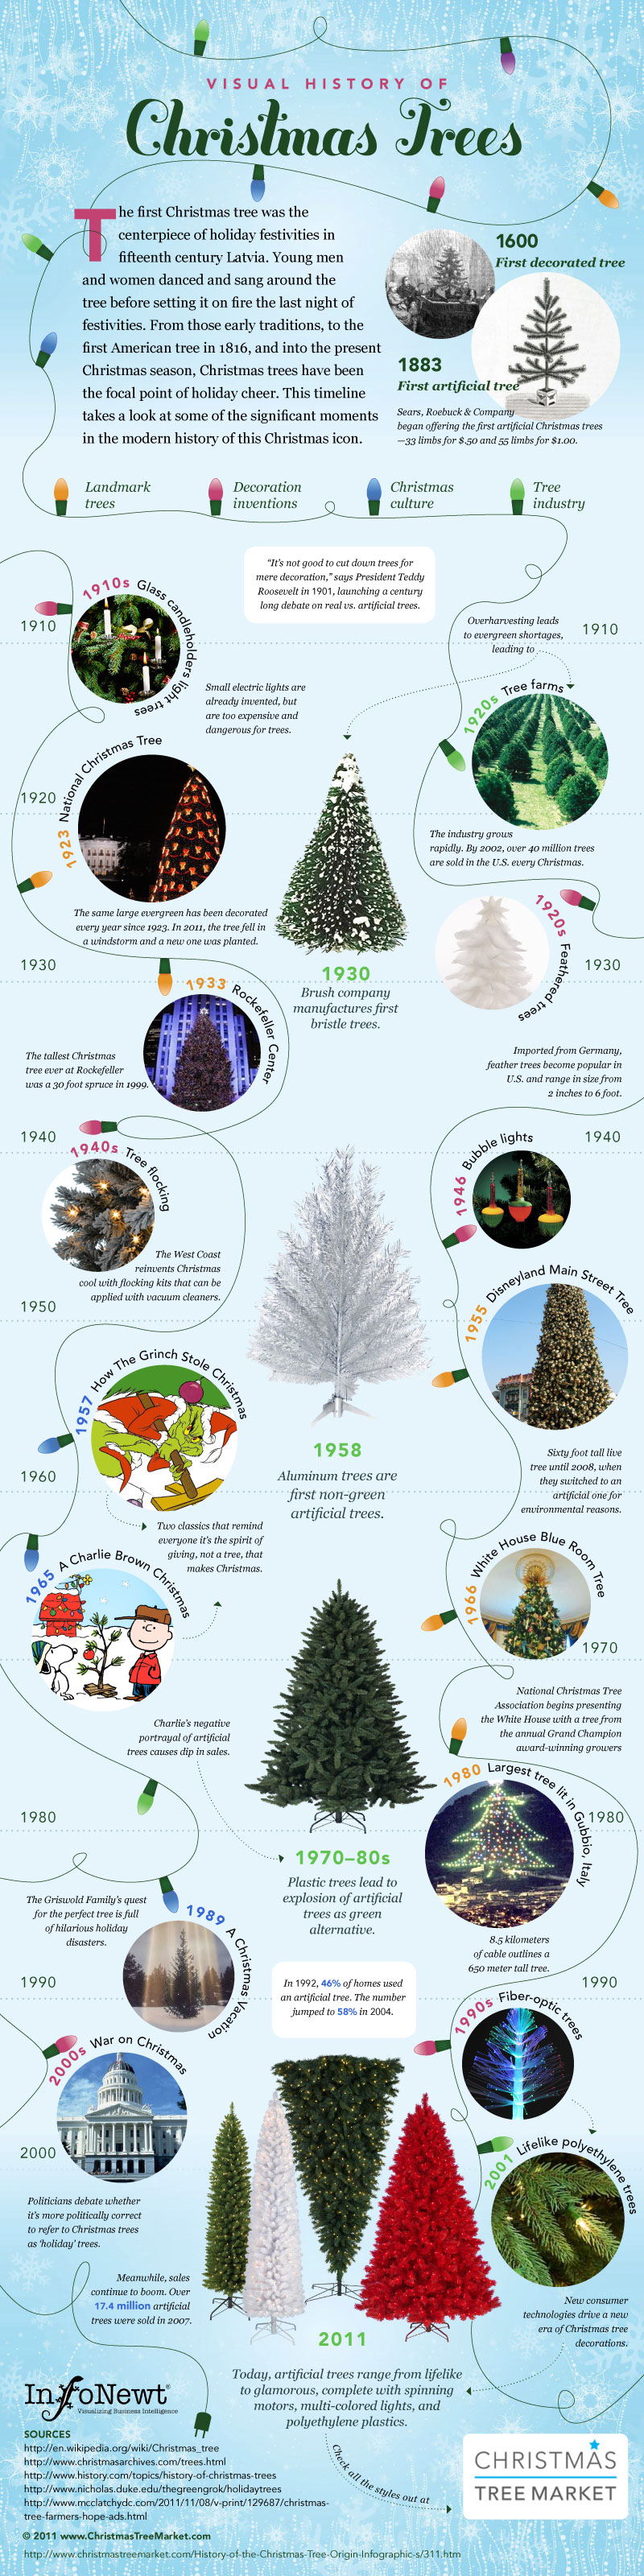 Christmas Tree History-Infographic